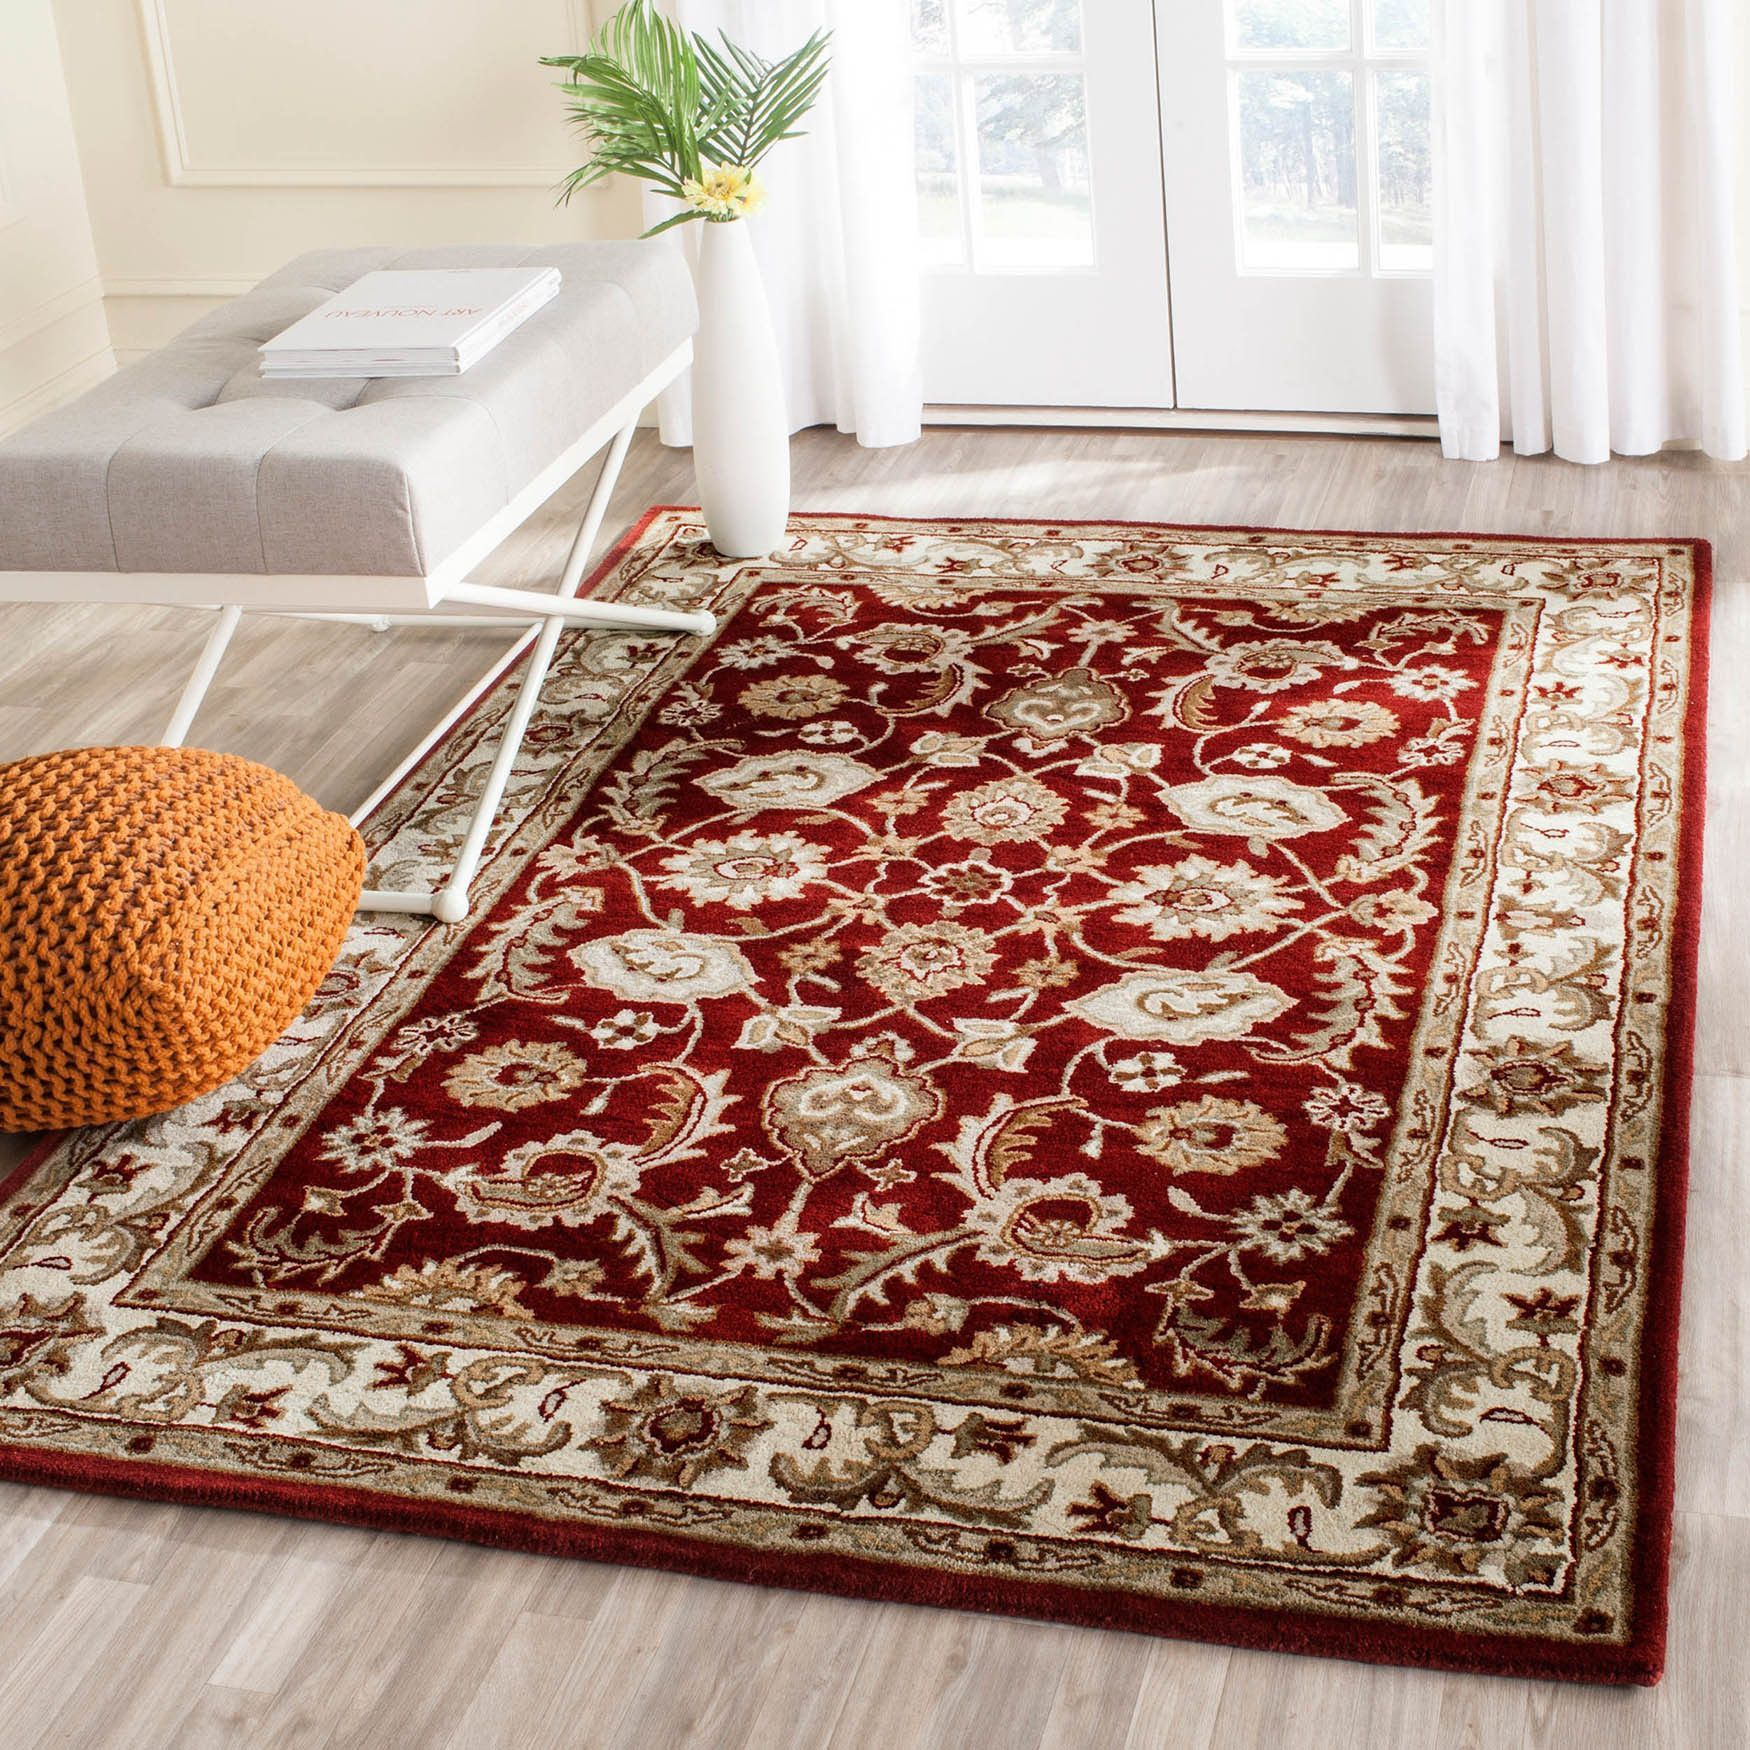 Safavieh Handmade Royalty Red/ Ivory Wool Rug ((2 ft. 3 in. x 7 ft. )), Size 2'3 x 7' (Cotton, Border)